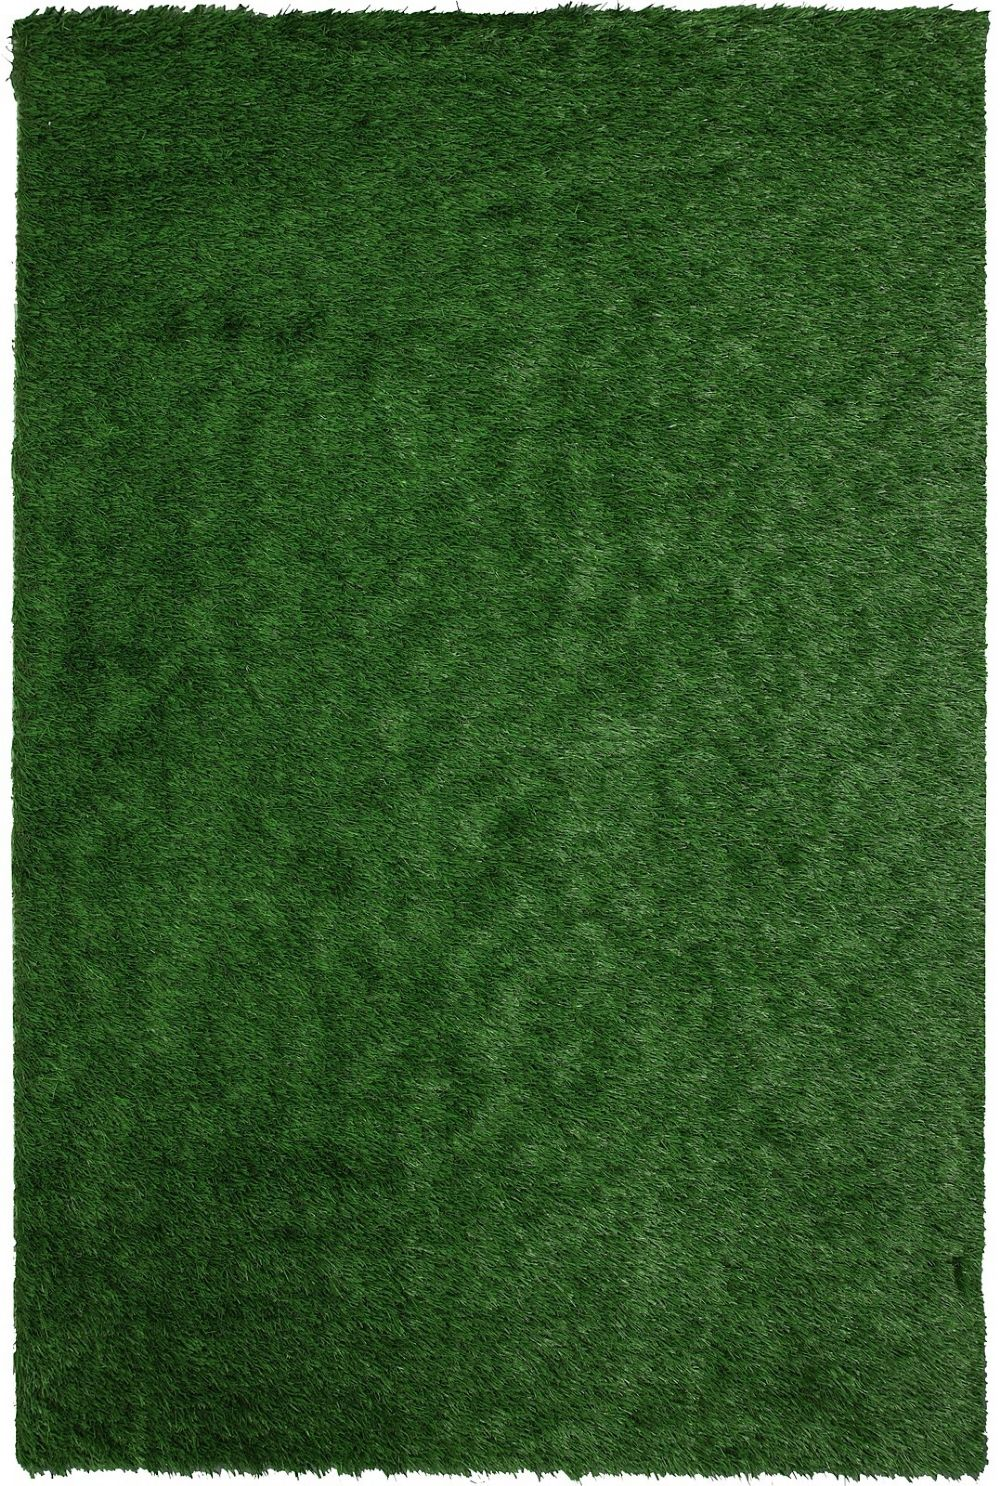 mohawk turf rug contemporary area rug collection